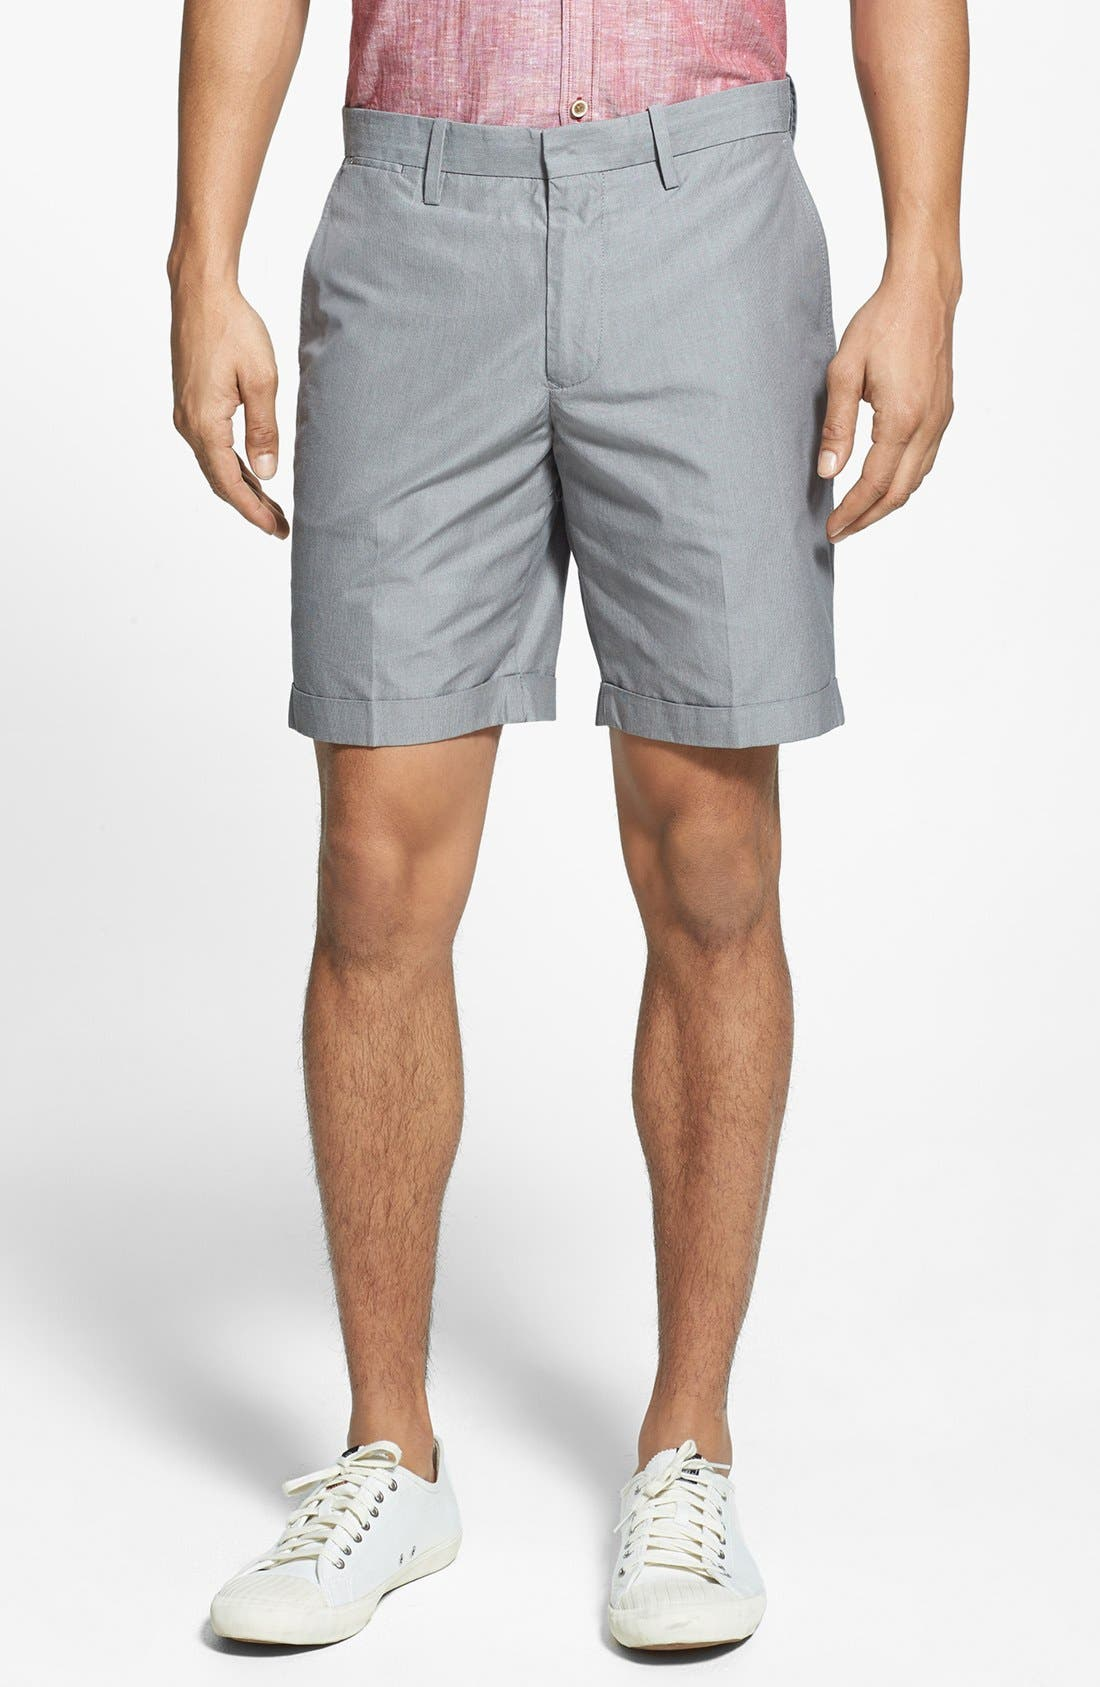 Main Image - Original Penguin Tailored Cuffed Trouser Shorts